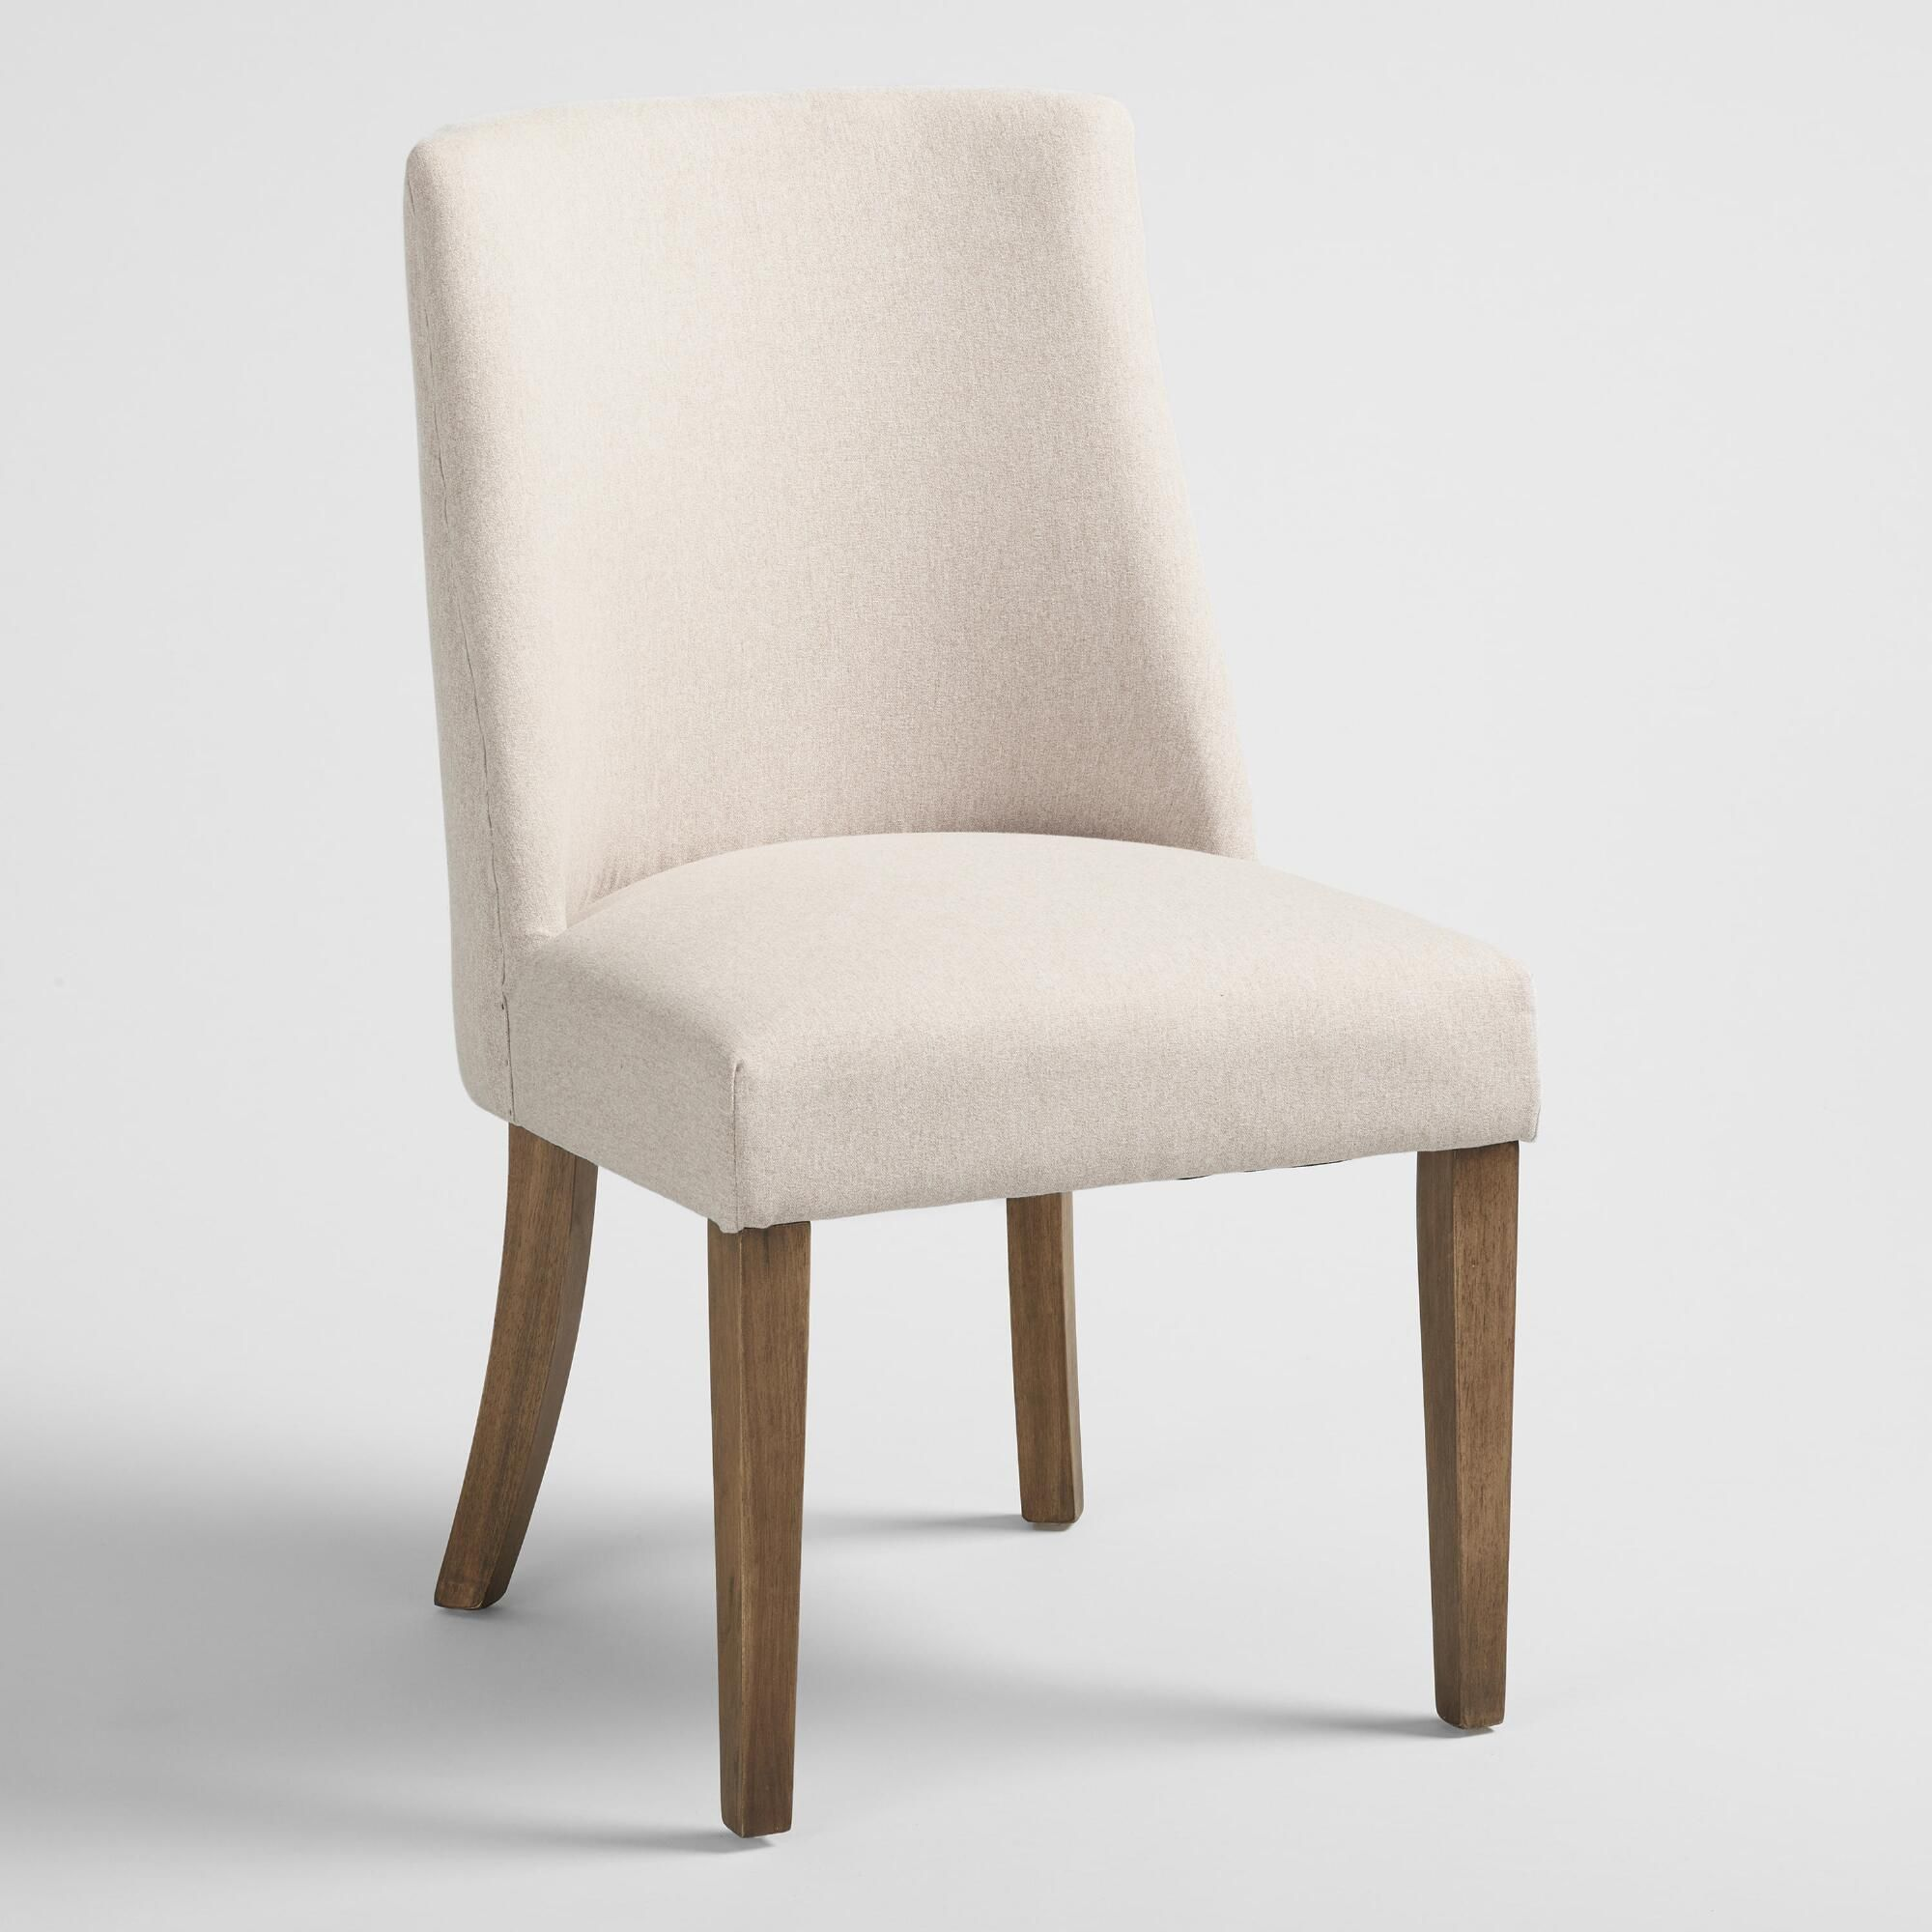 Natural Upholstered Lisette Dining Chair Set of 2 Fabric